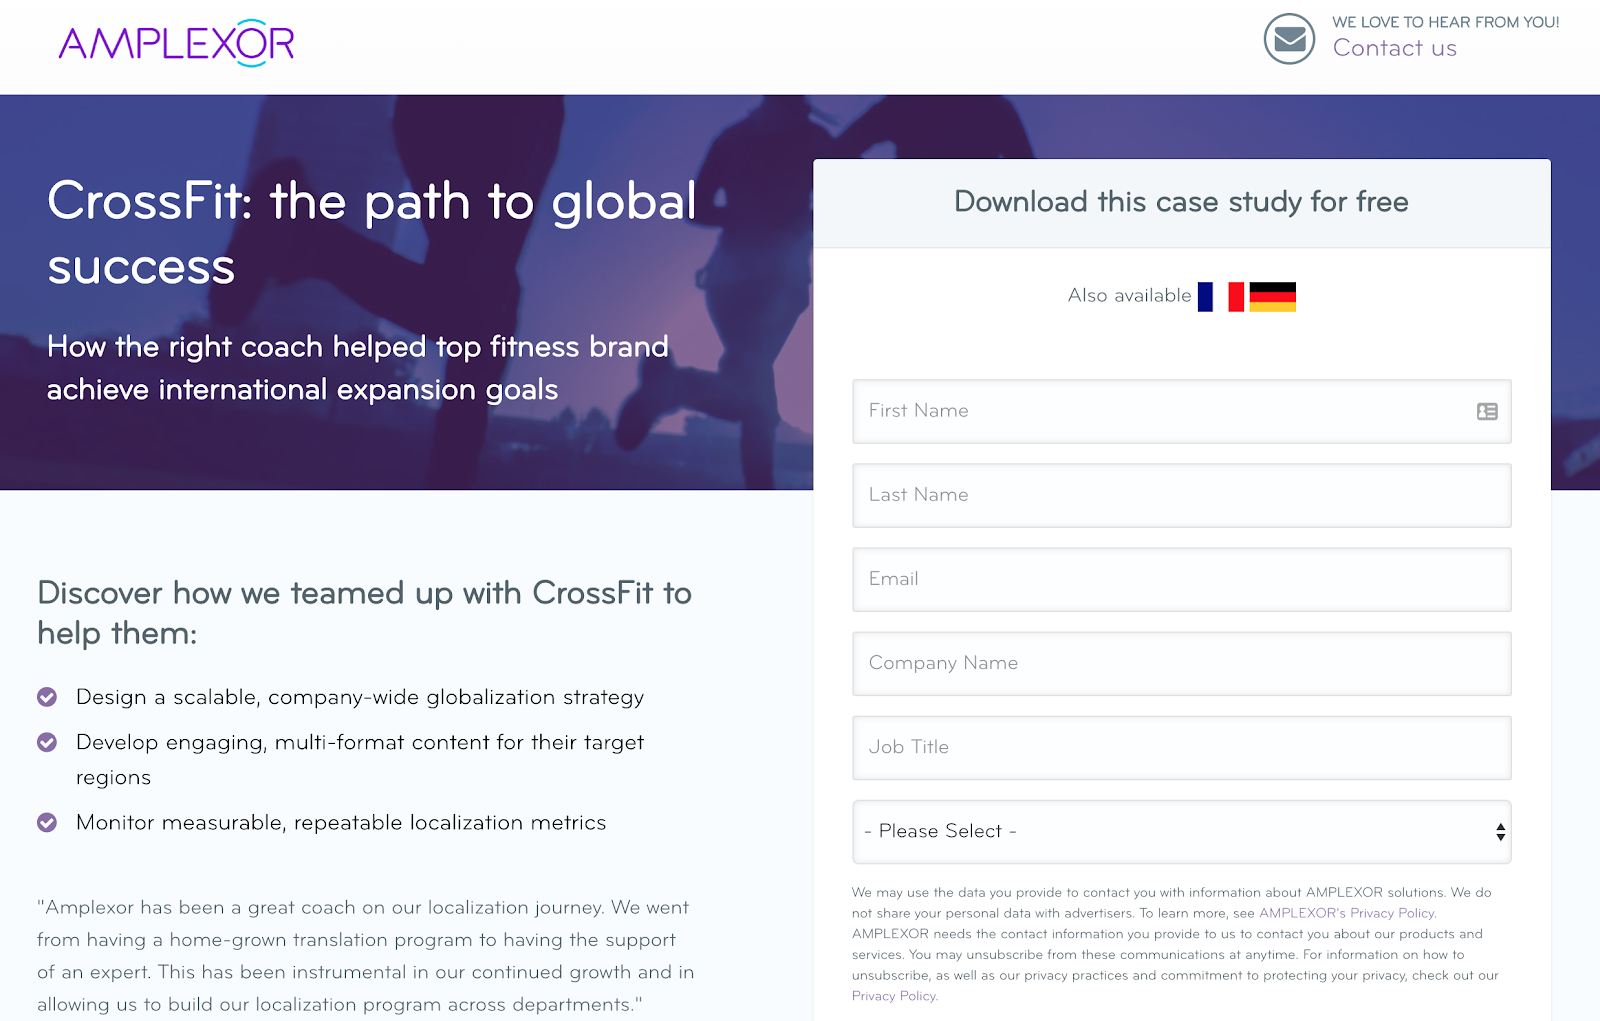 amplexor download page of free case study